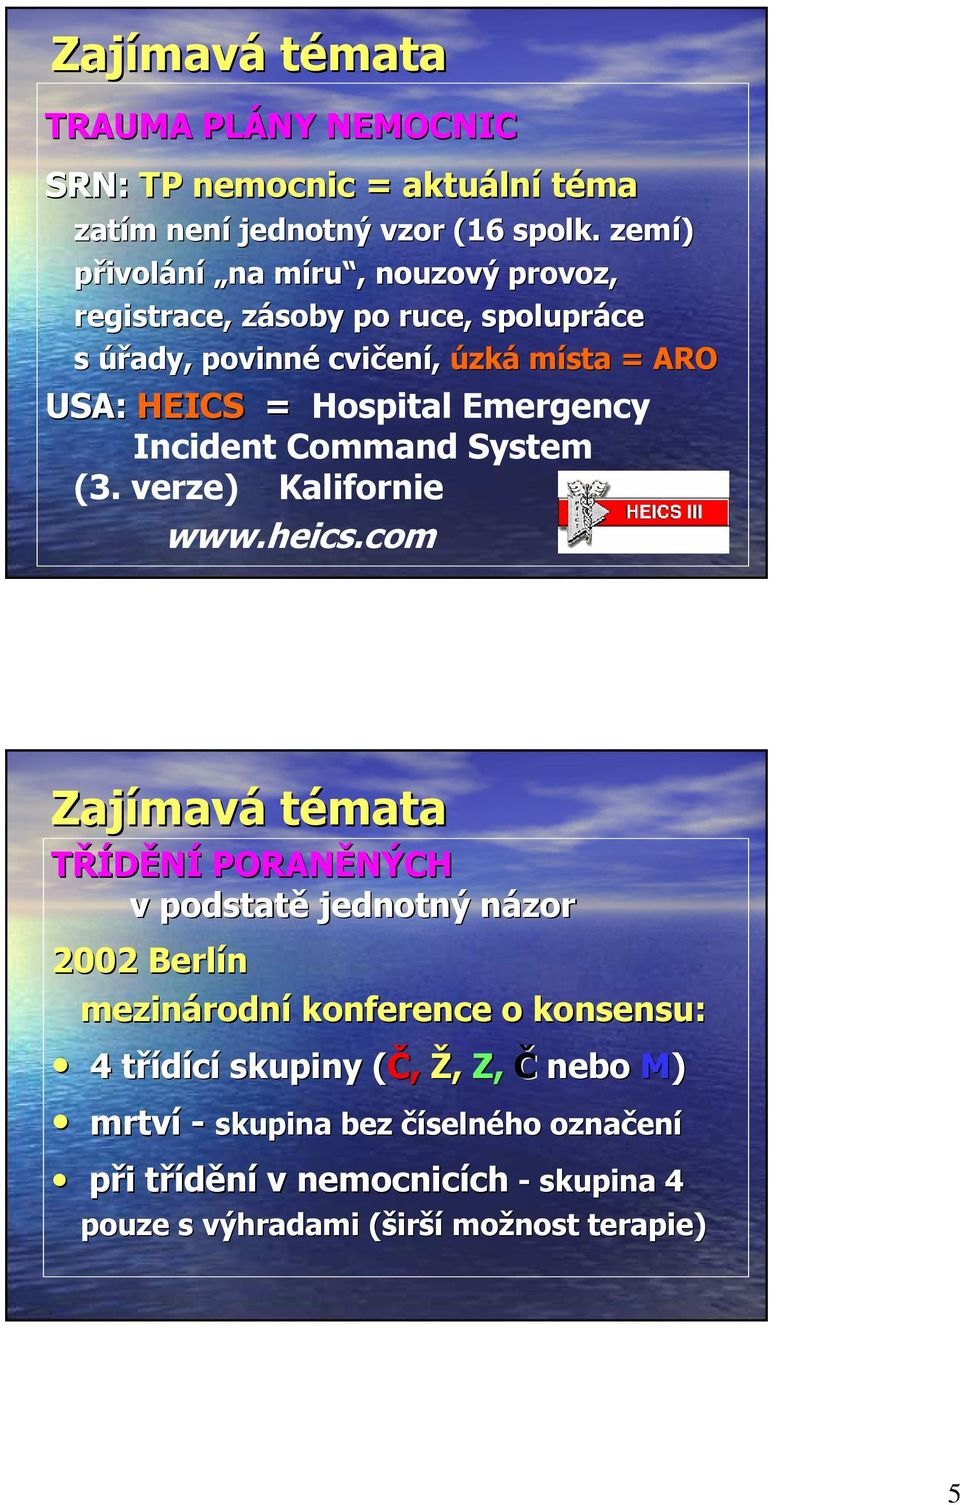 Emergency Incident Command System (3. verze) Kalifornie www.heics.